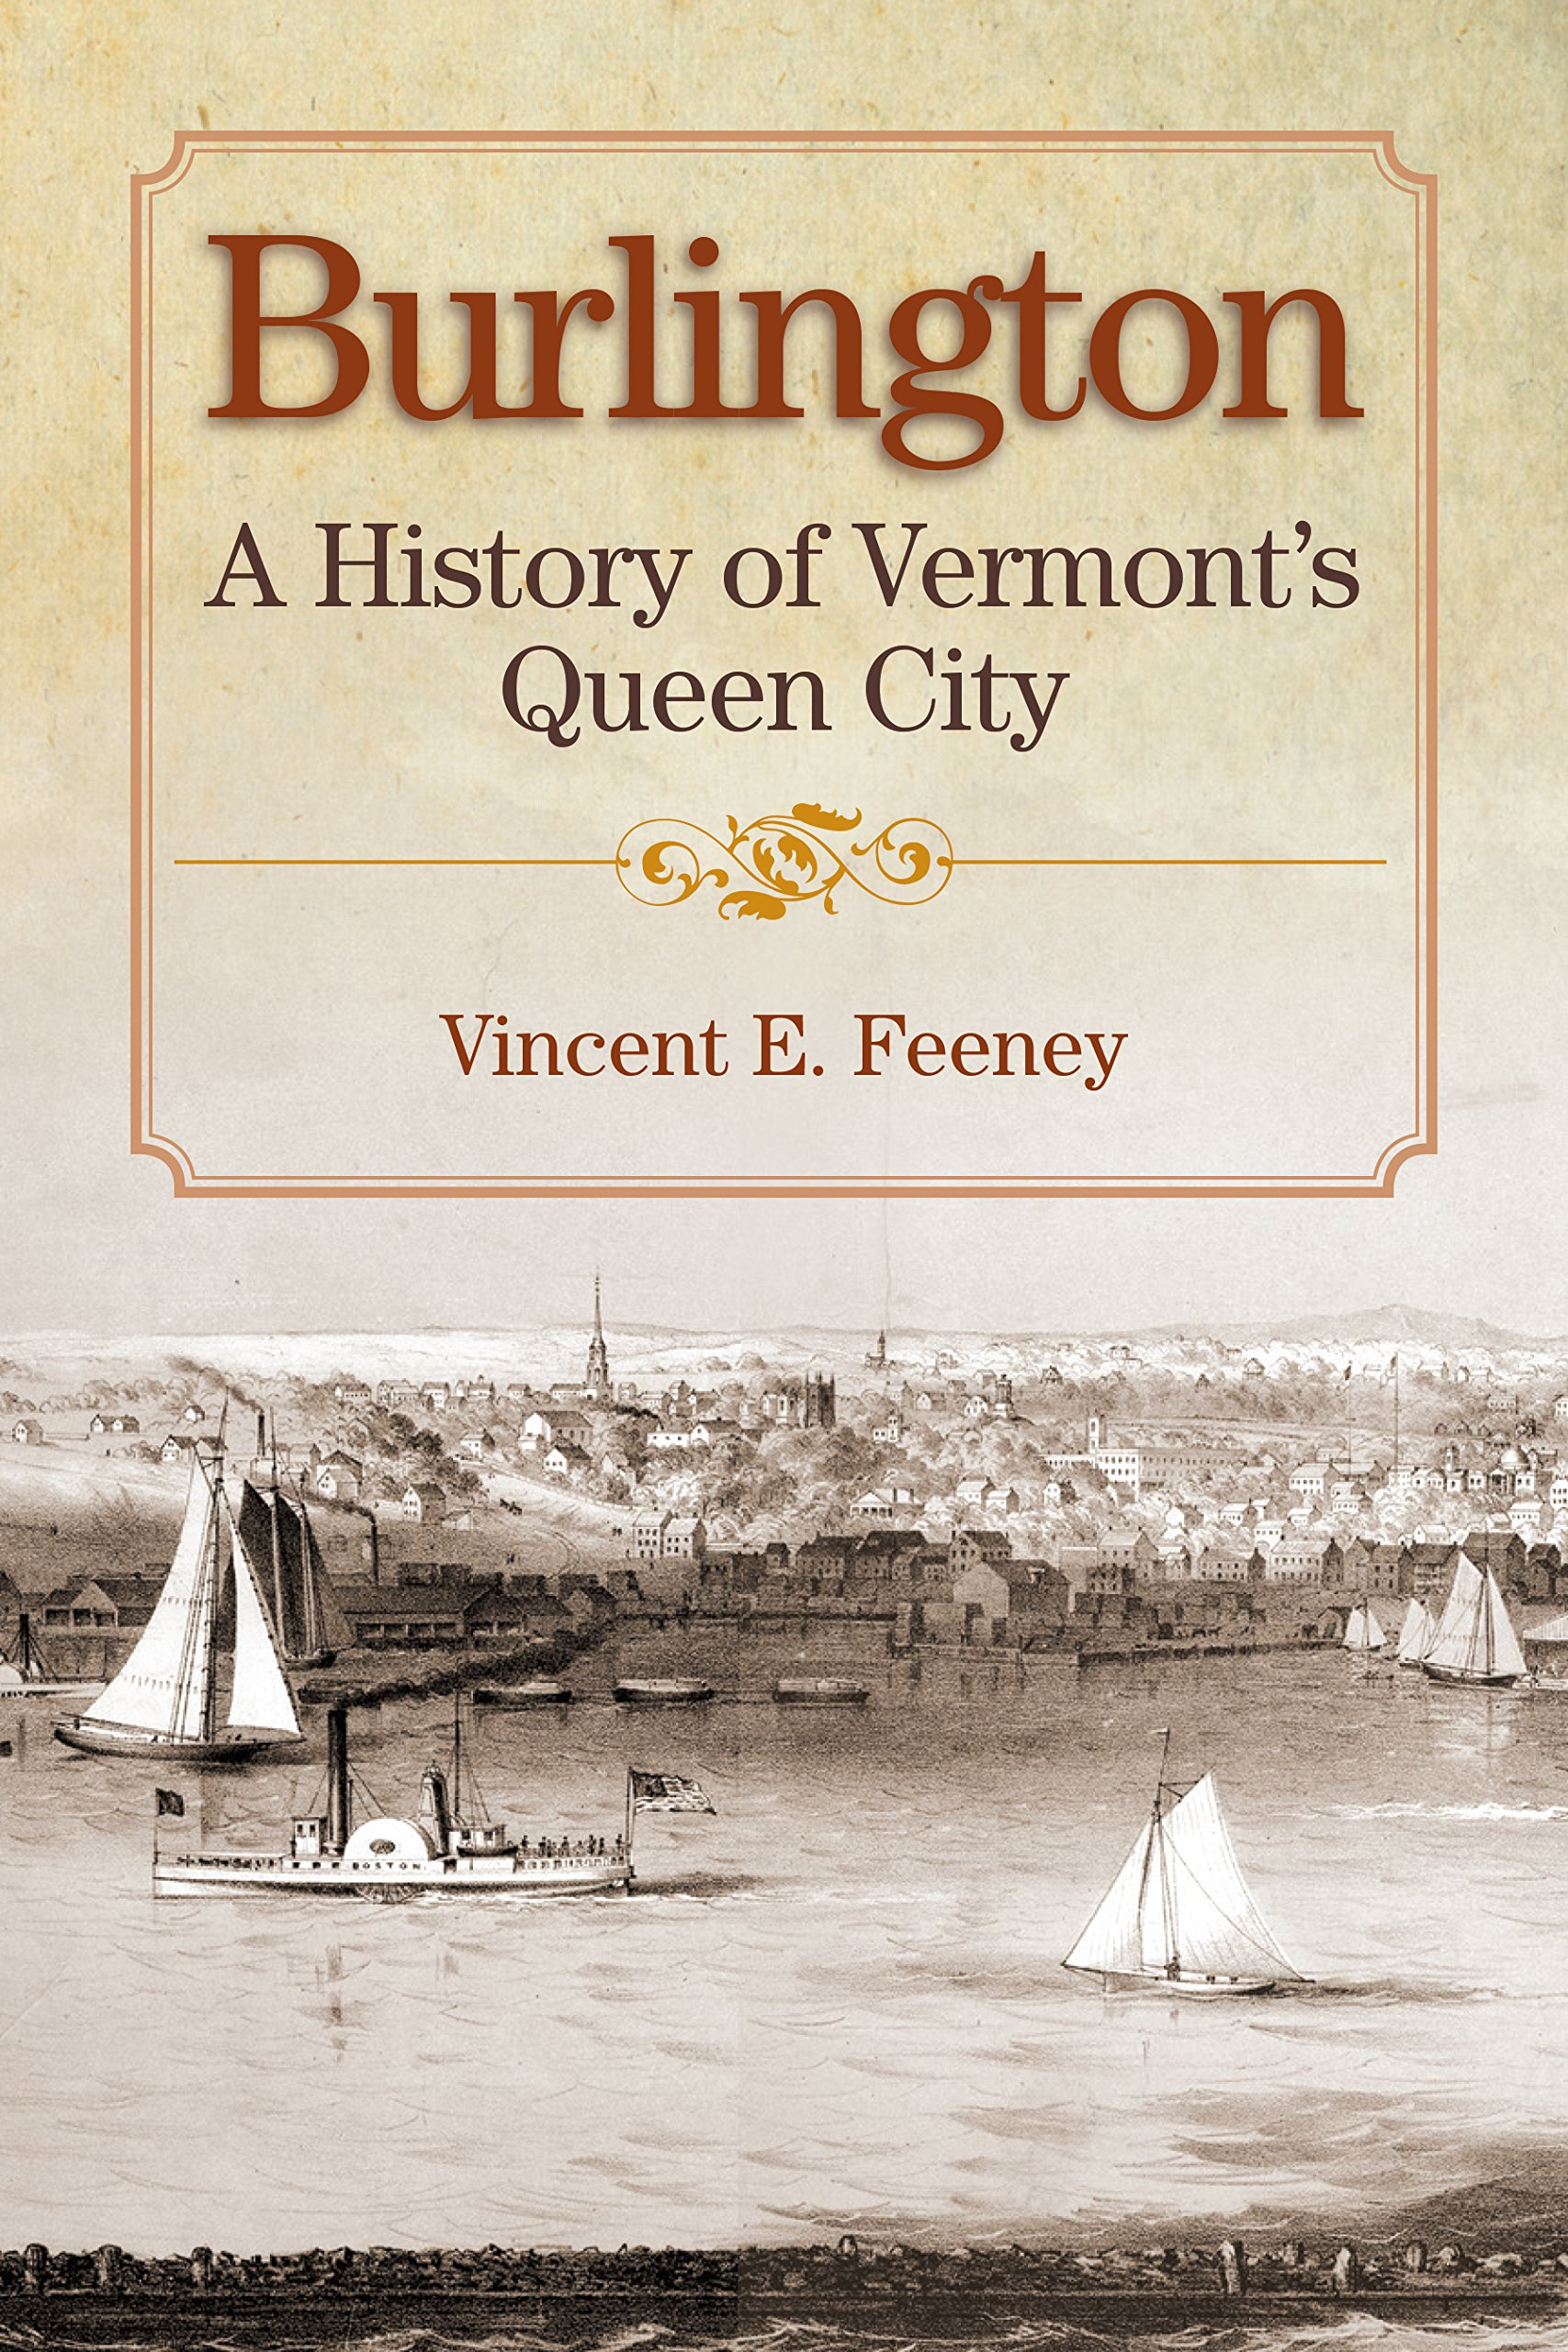 ce1dc98041ae Burlington: A History of Vermont's Queen City Paperback – September 29, 2015